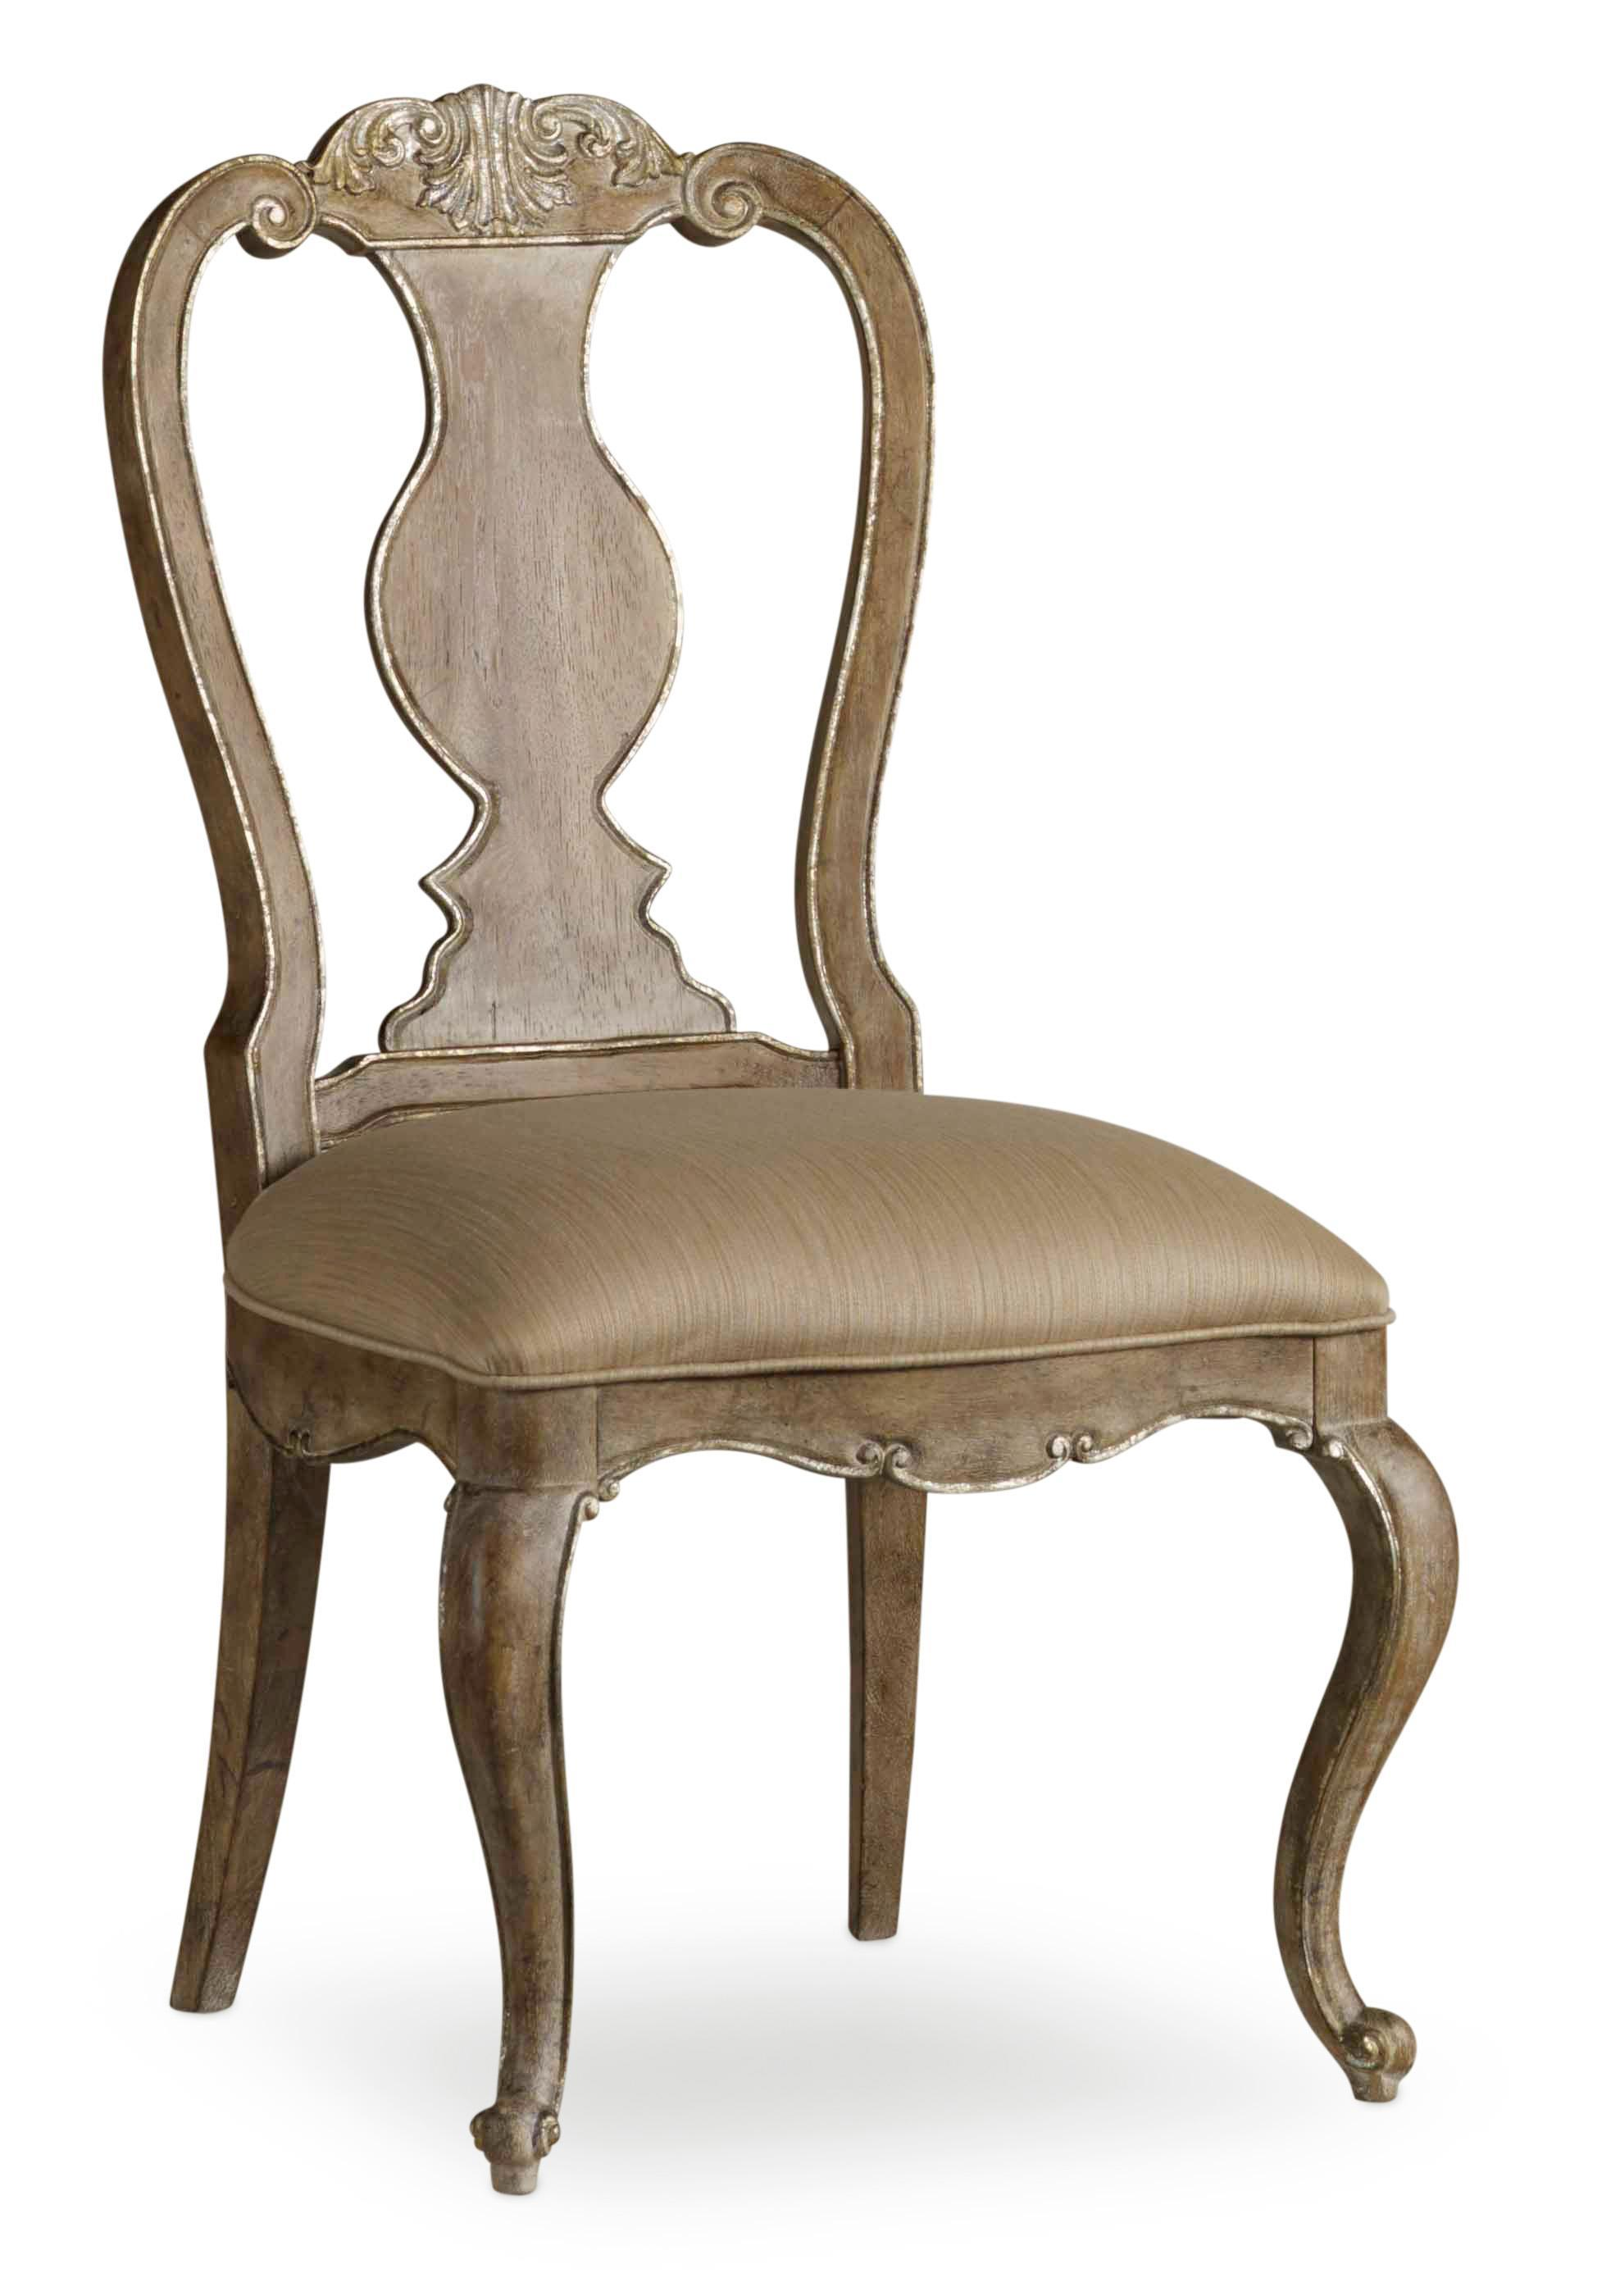 Hooker Furniture La Maison du Travial Urn Back Desk Chair - Item Number: 5435-30310